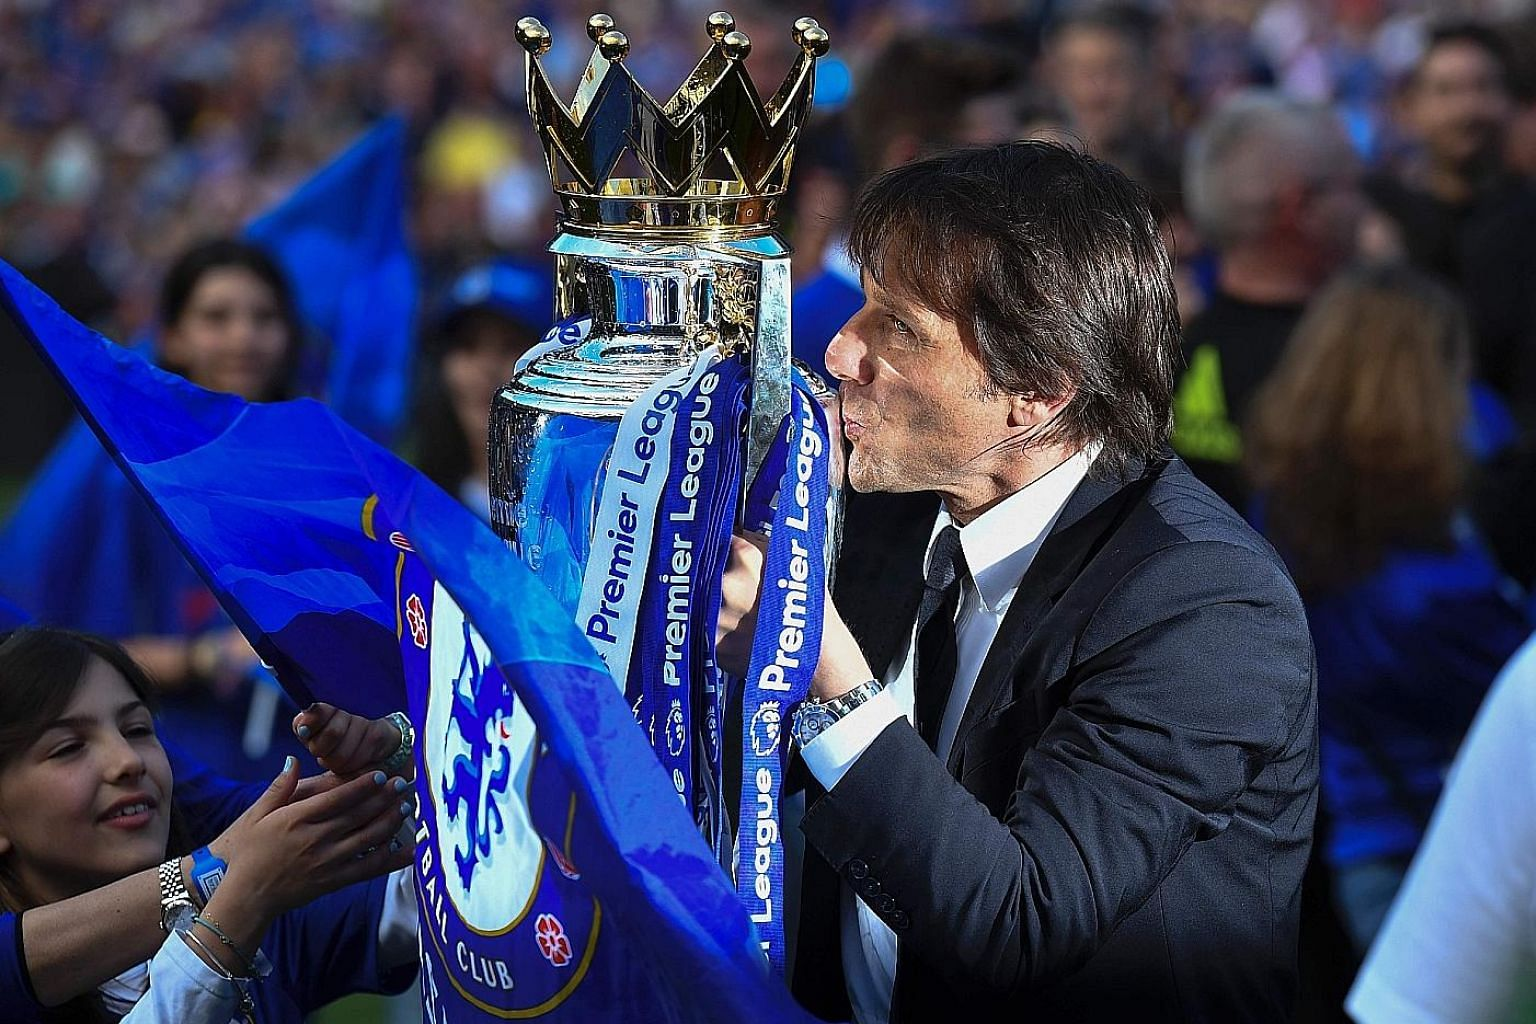 Antonio Conte celebrating capturing the Premier League trophy with Chelsea in his first season in charge. The Italian will attempt to complete a league and Cup double when his side take on Arsenal at Wembley.